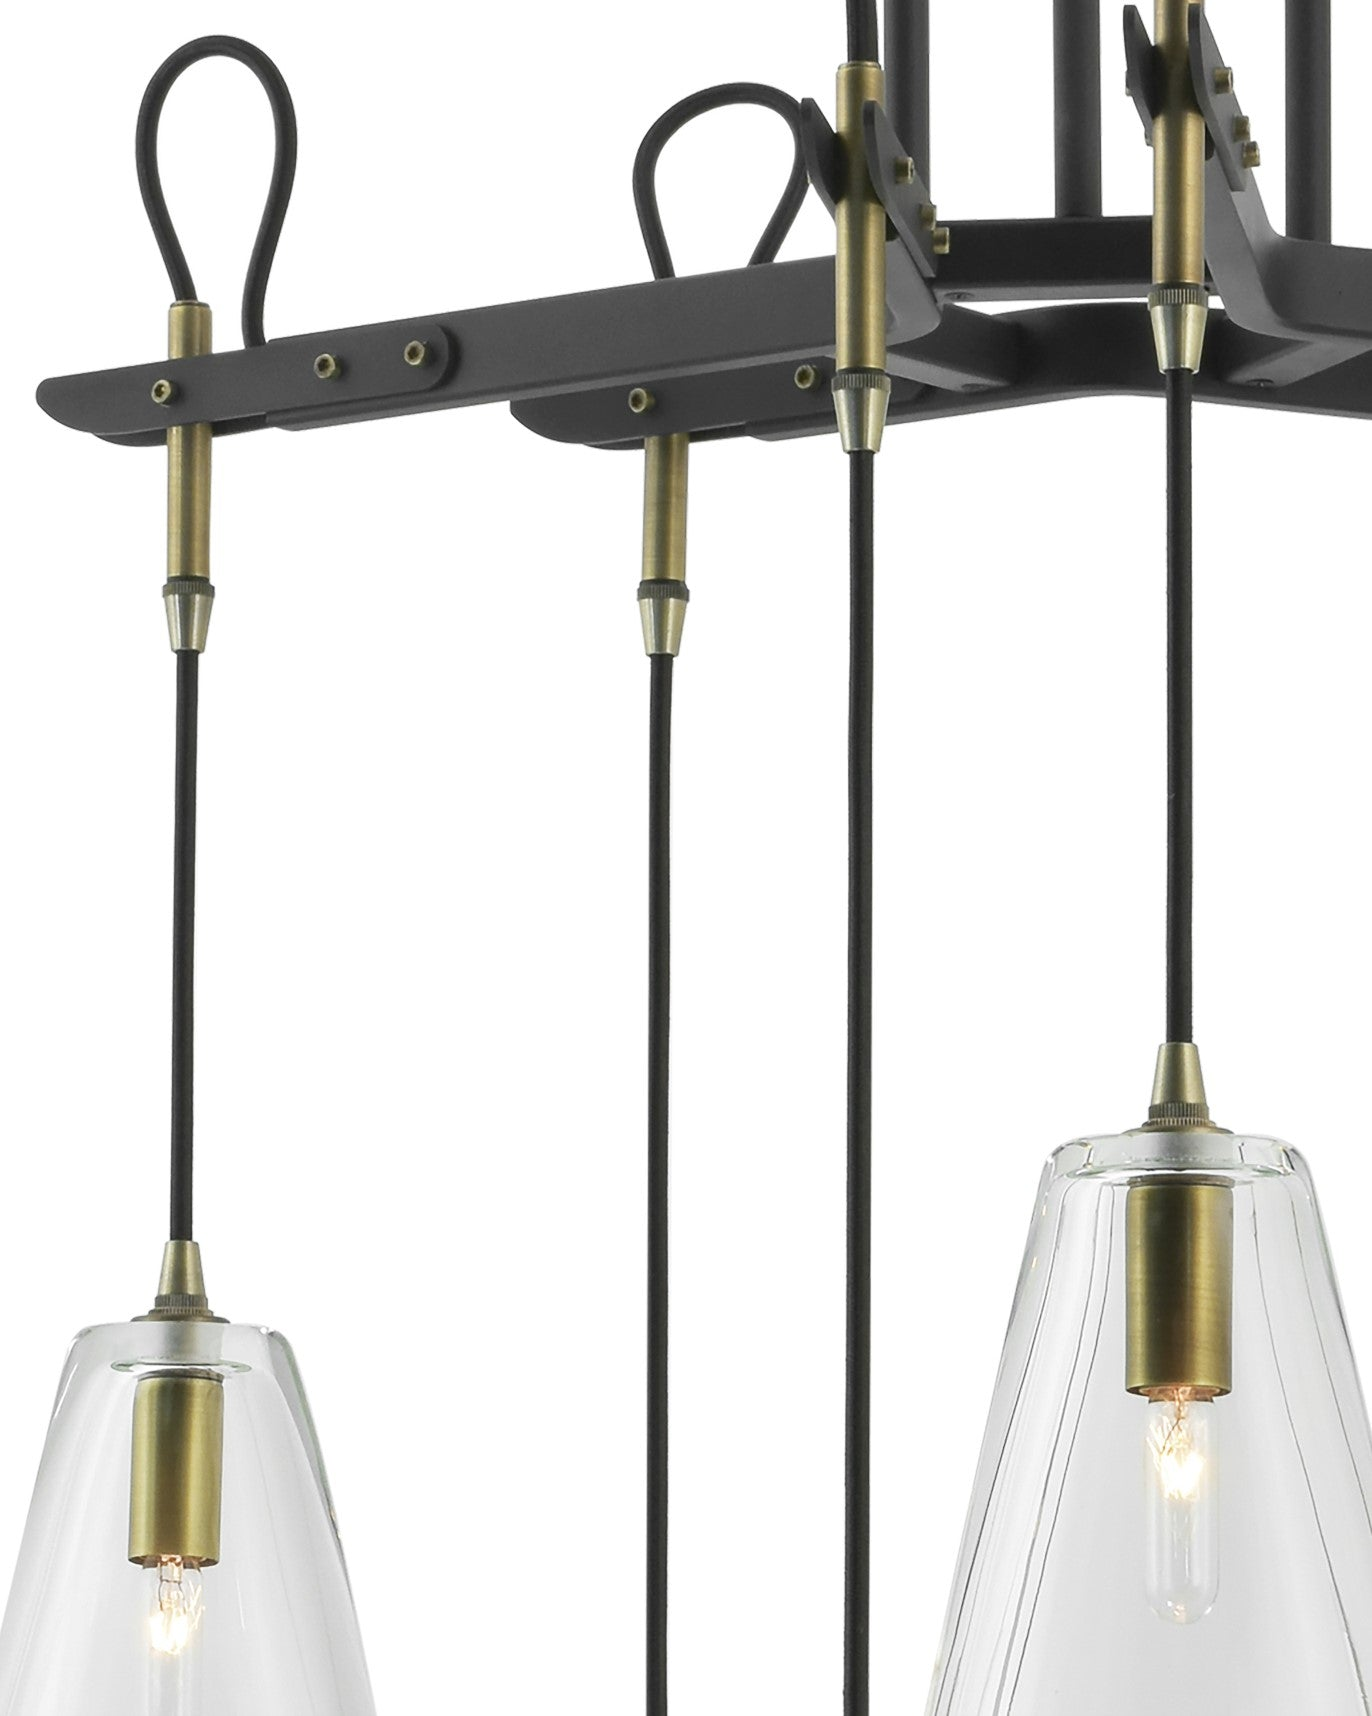 Patinated Steel with Light Antique Brass accents and Clear Glass